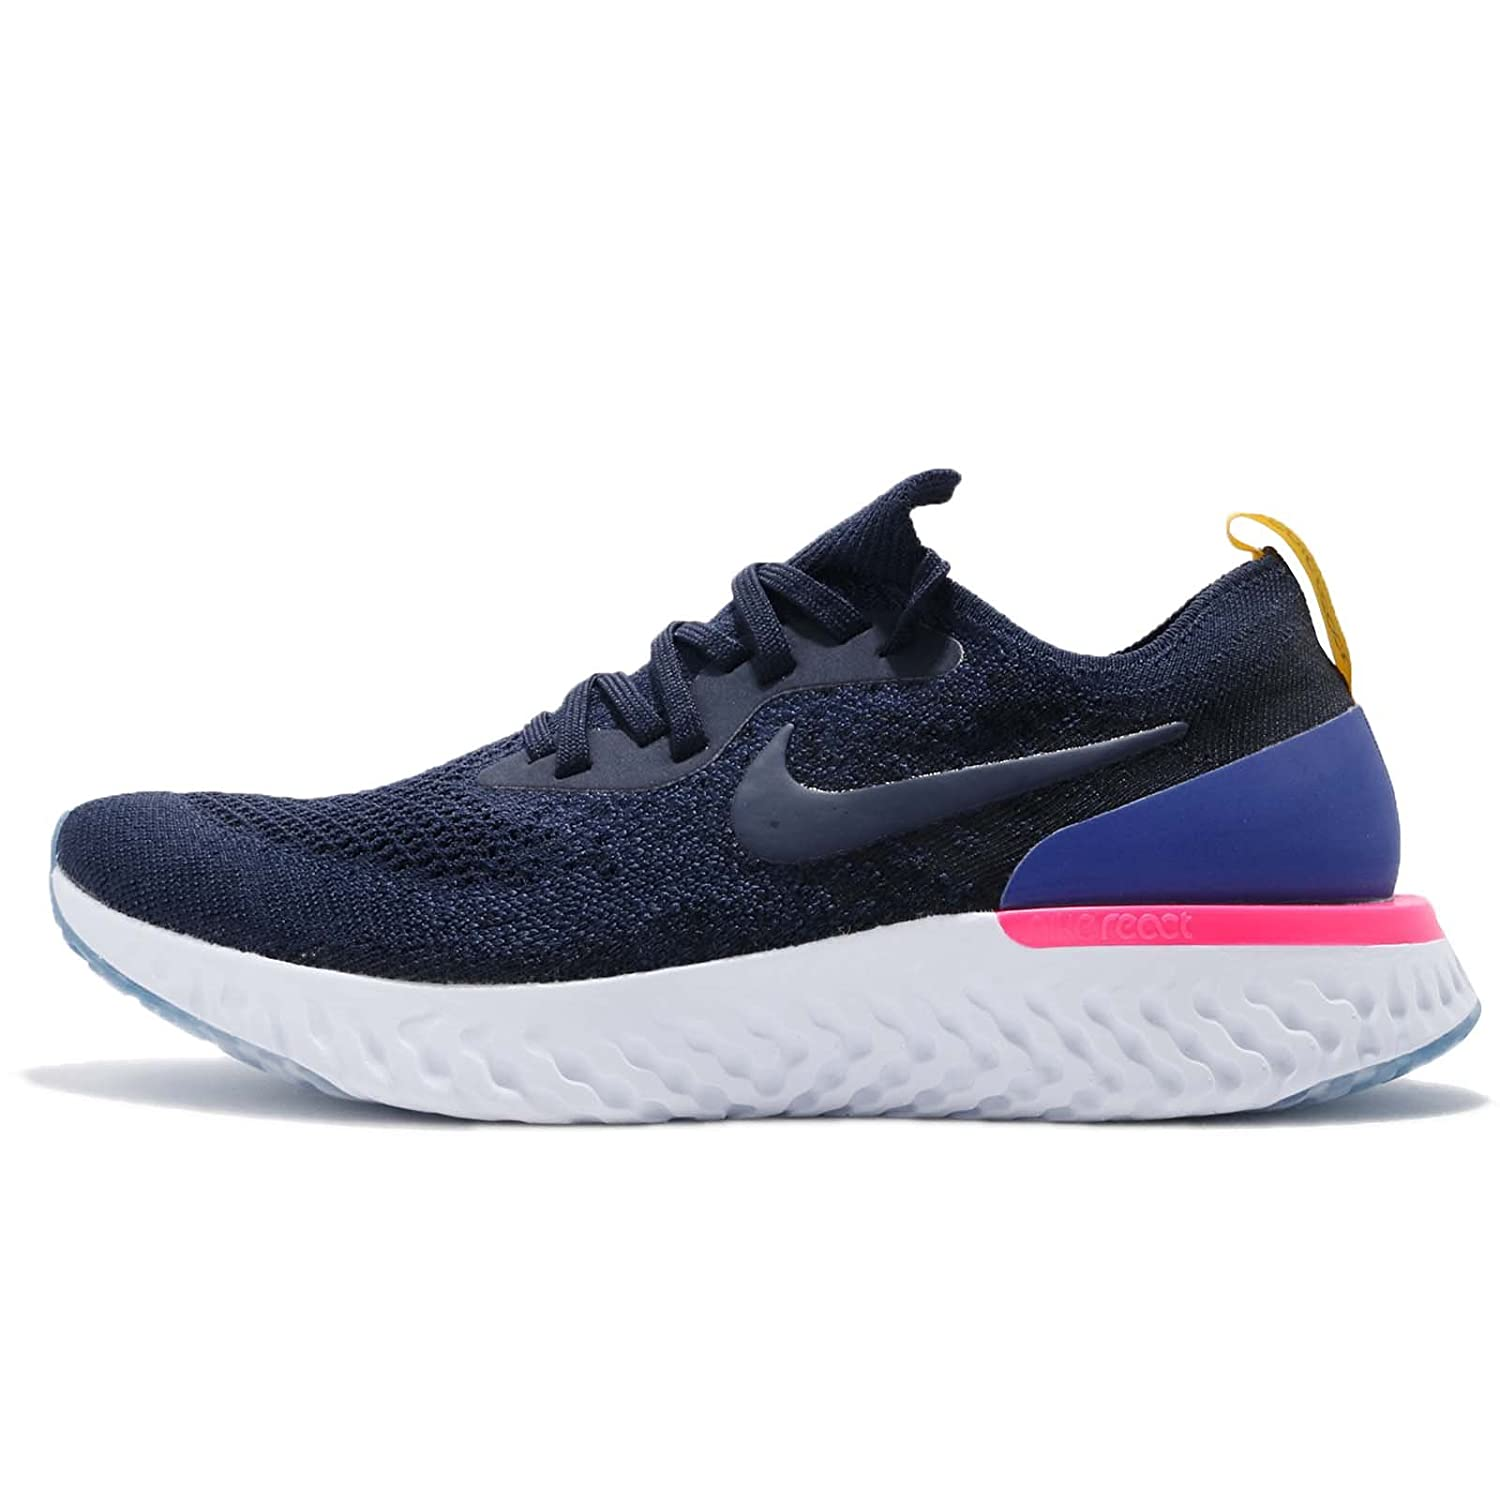 29a09e3683847 NIKE Epic React Flyknit Women s Pink Mesh Running Shoes -7 US 38 EU 4.5 UK   Buy Online at Low Prices in India - Amazon.in